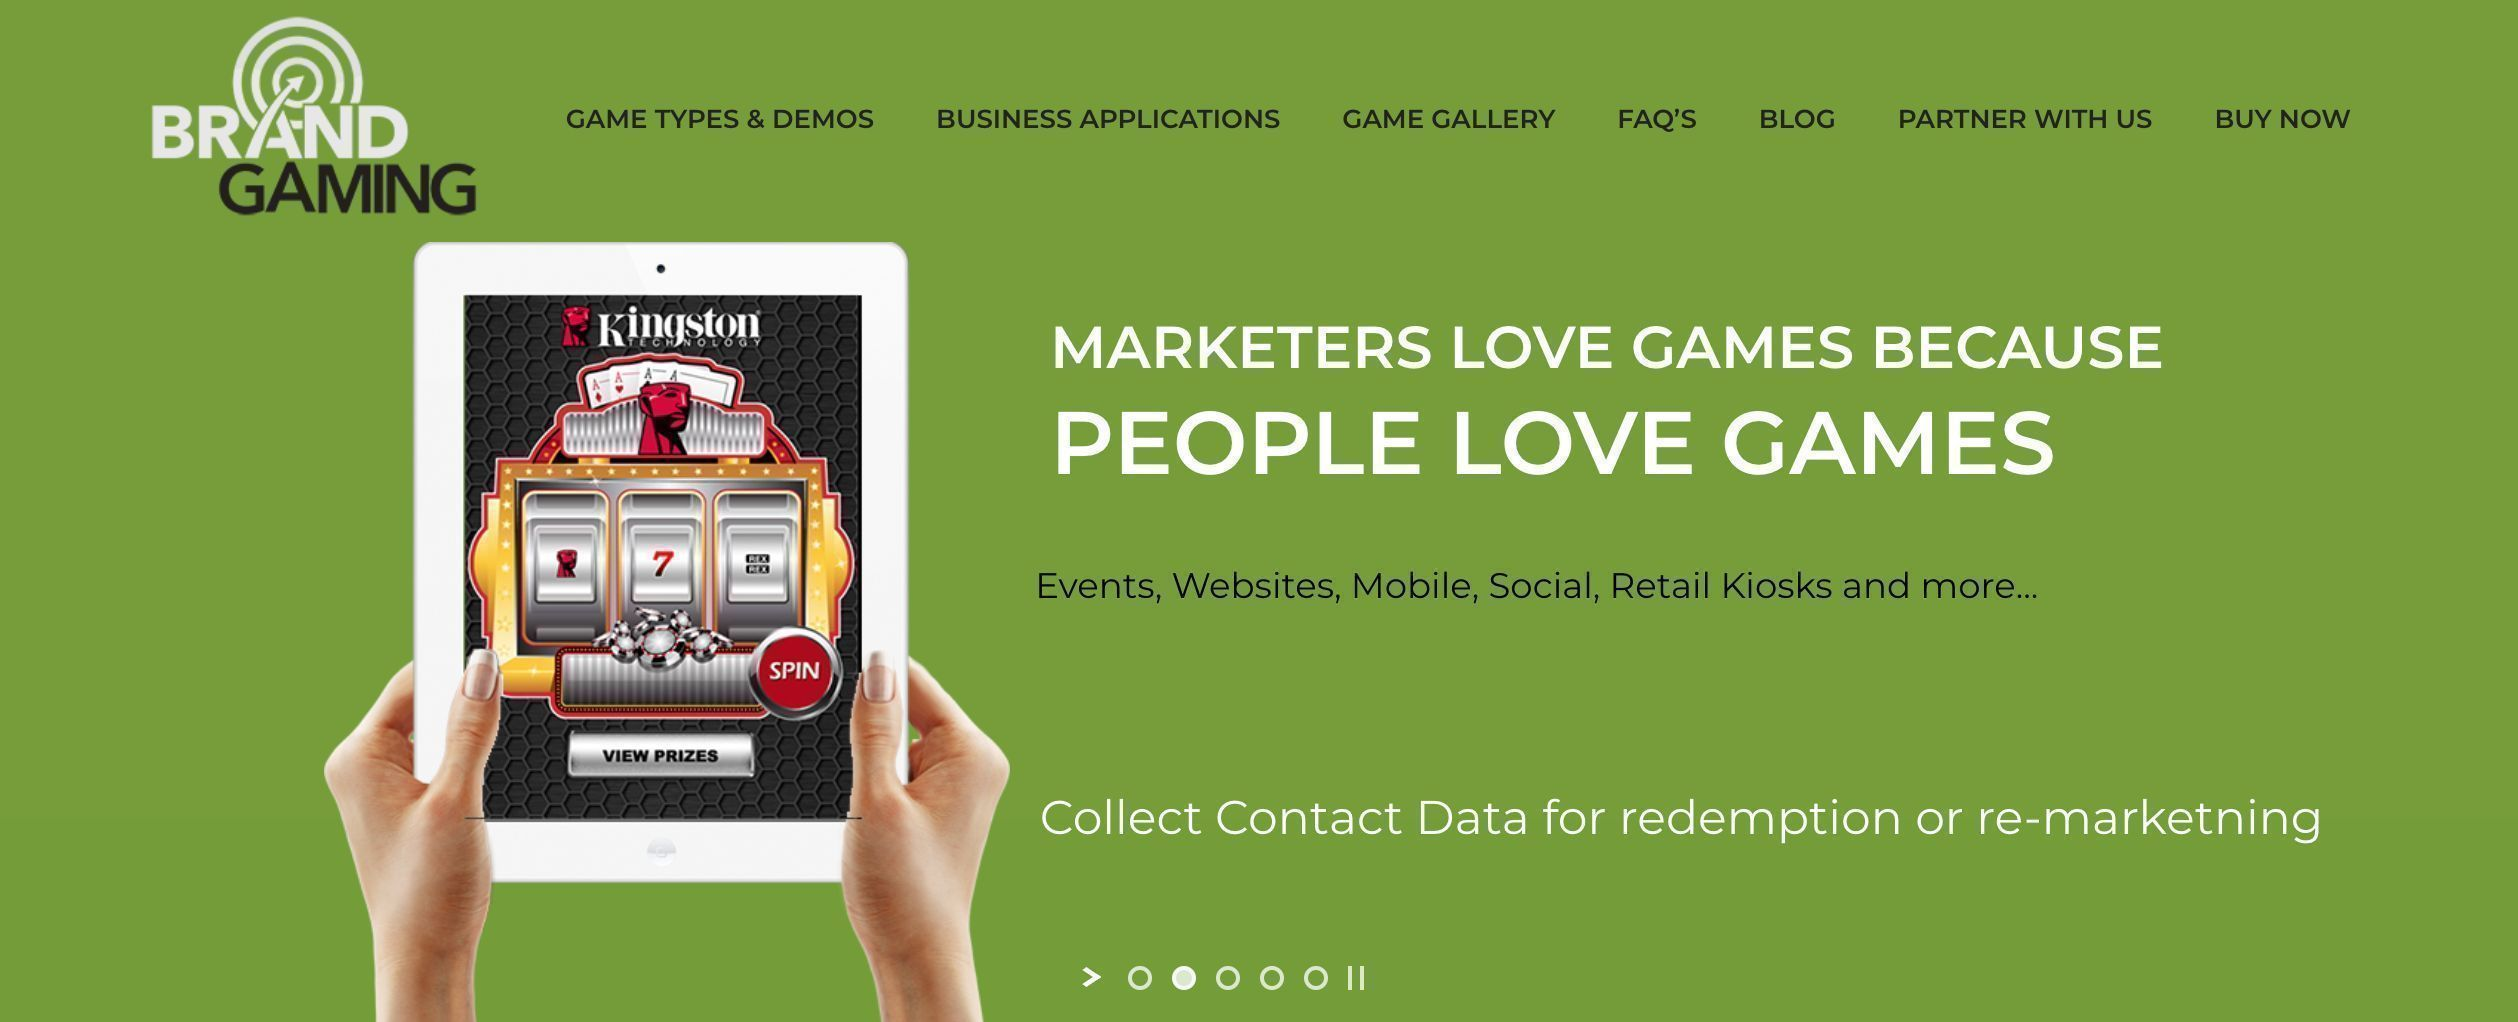 Brand Gaming home page